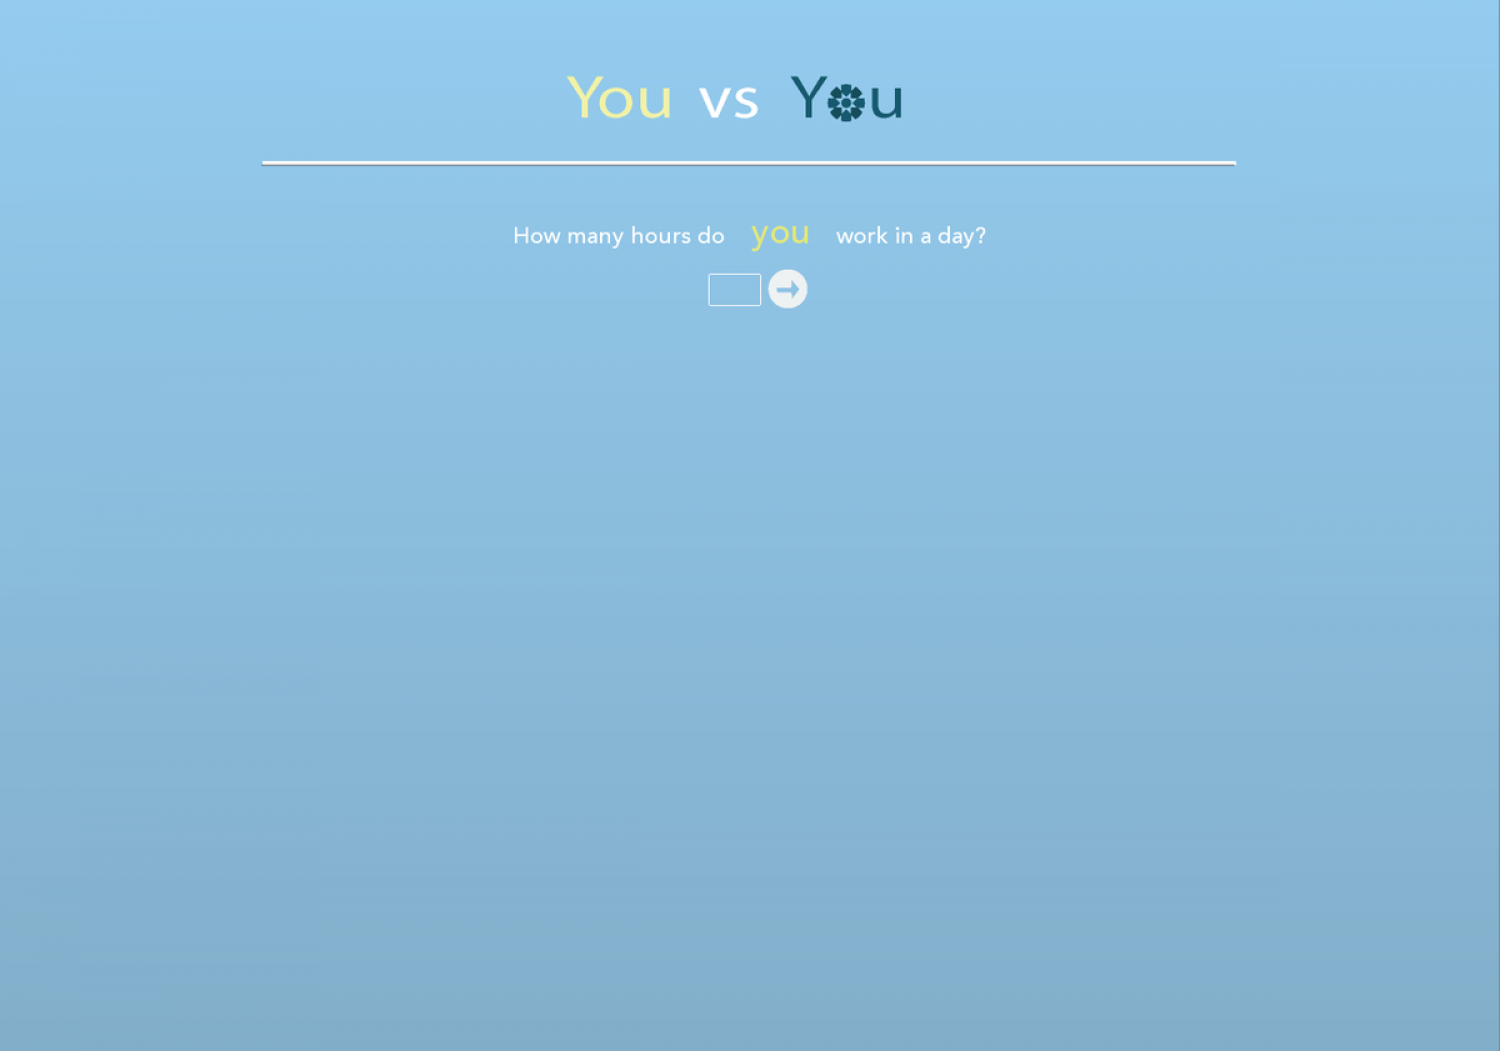 You vs you Infographic